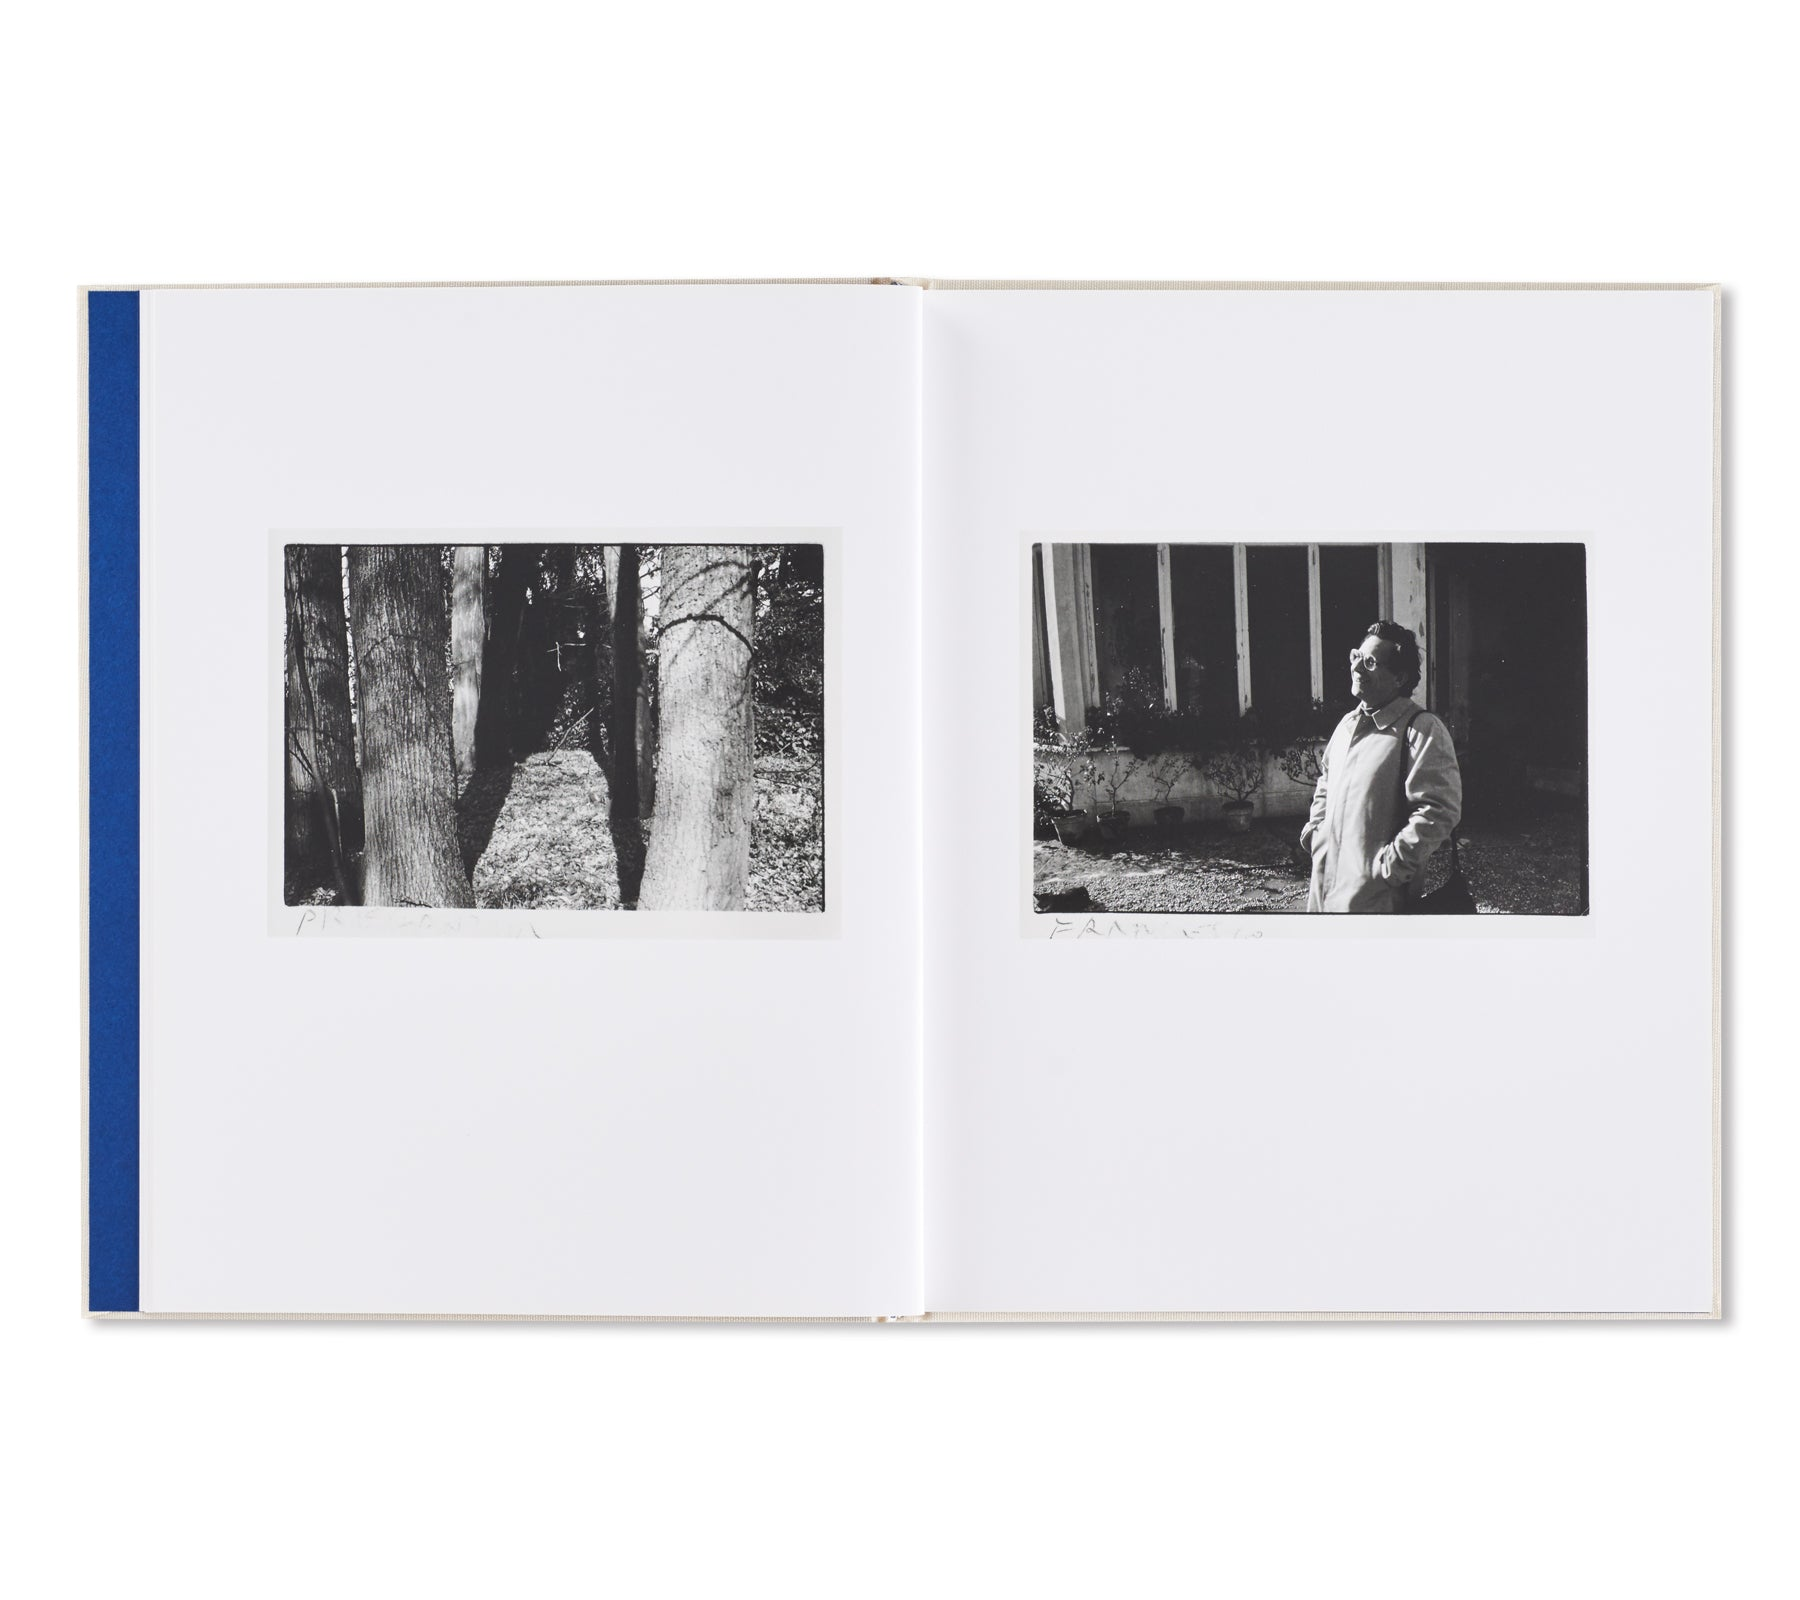 SUBSCRIPTION SERIES #6 by Guido Guidi, Jason Fulford, Gregory Halpern, Viviane Sassen